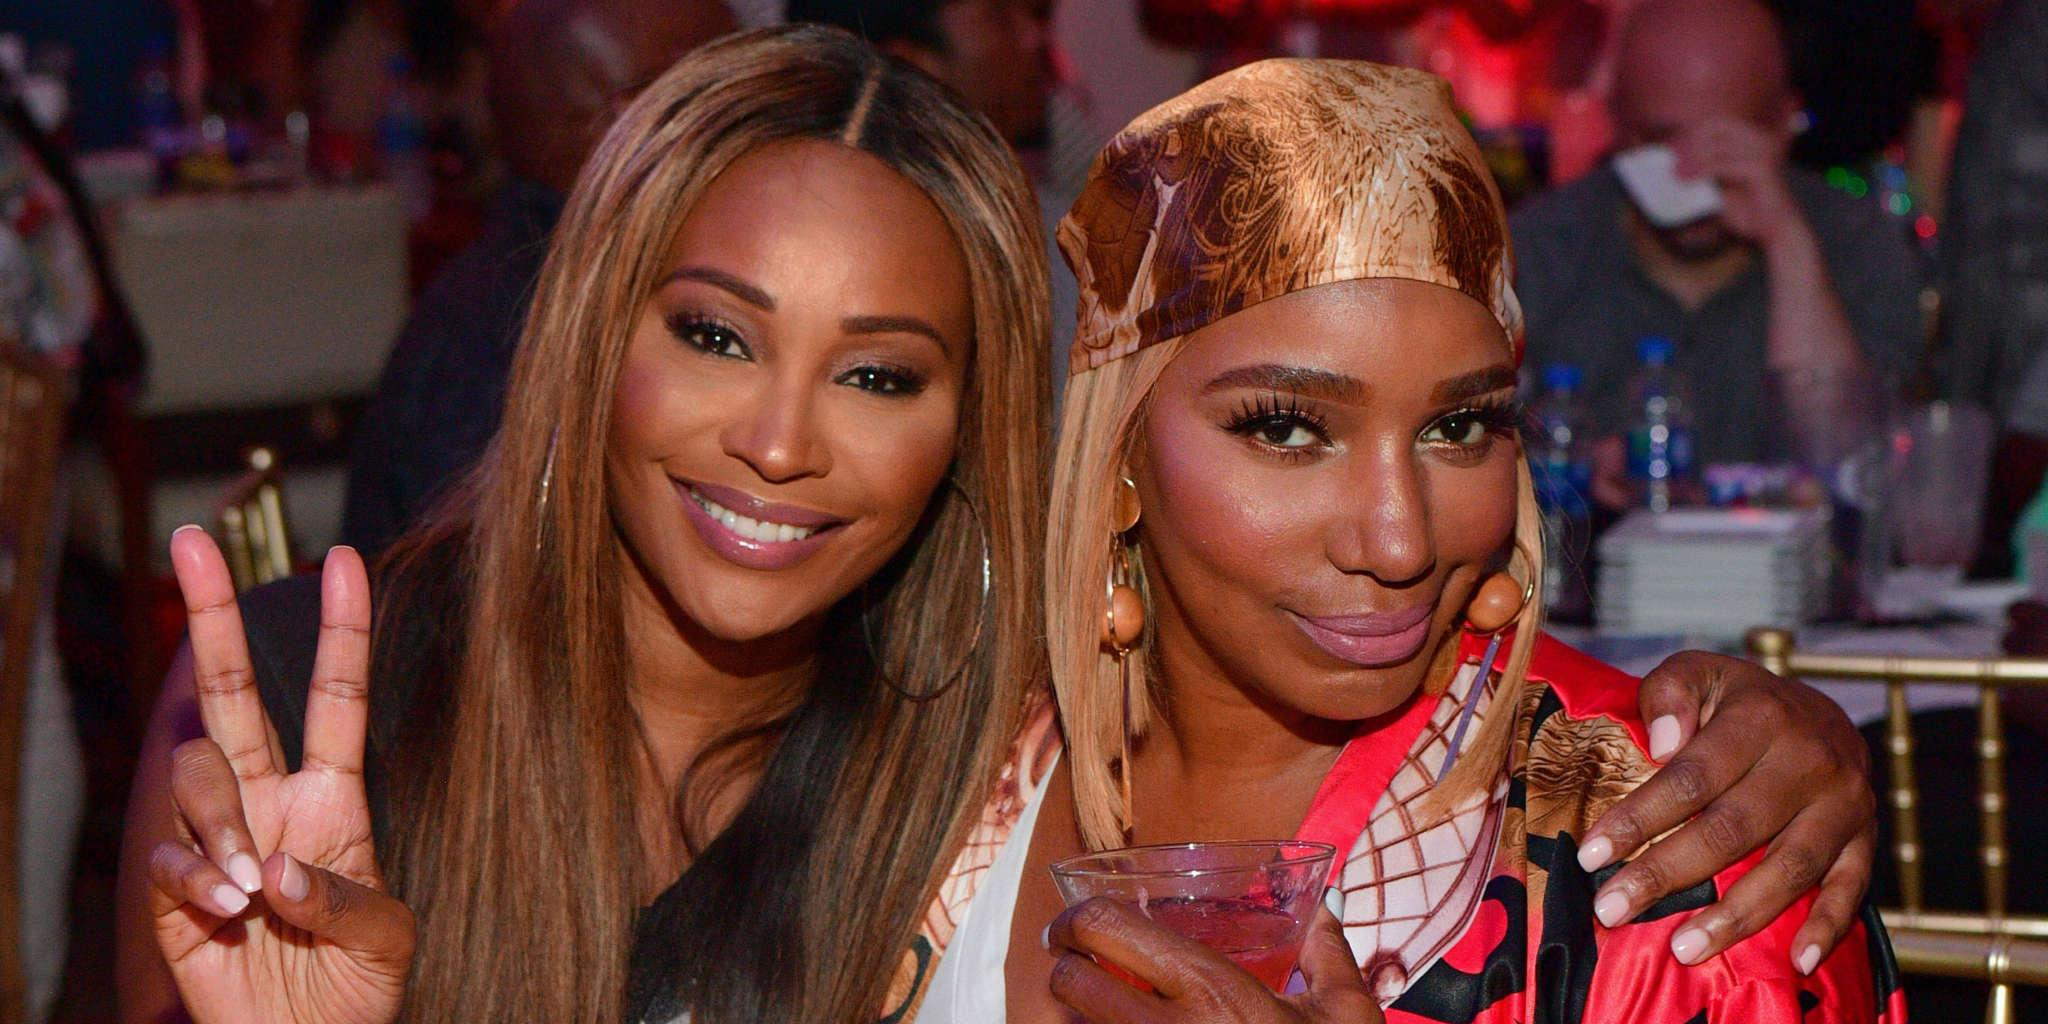 NeNe Leakes Shocks Fans With Her Latest Video - Fans Say She Never Looked Better